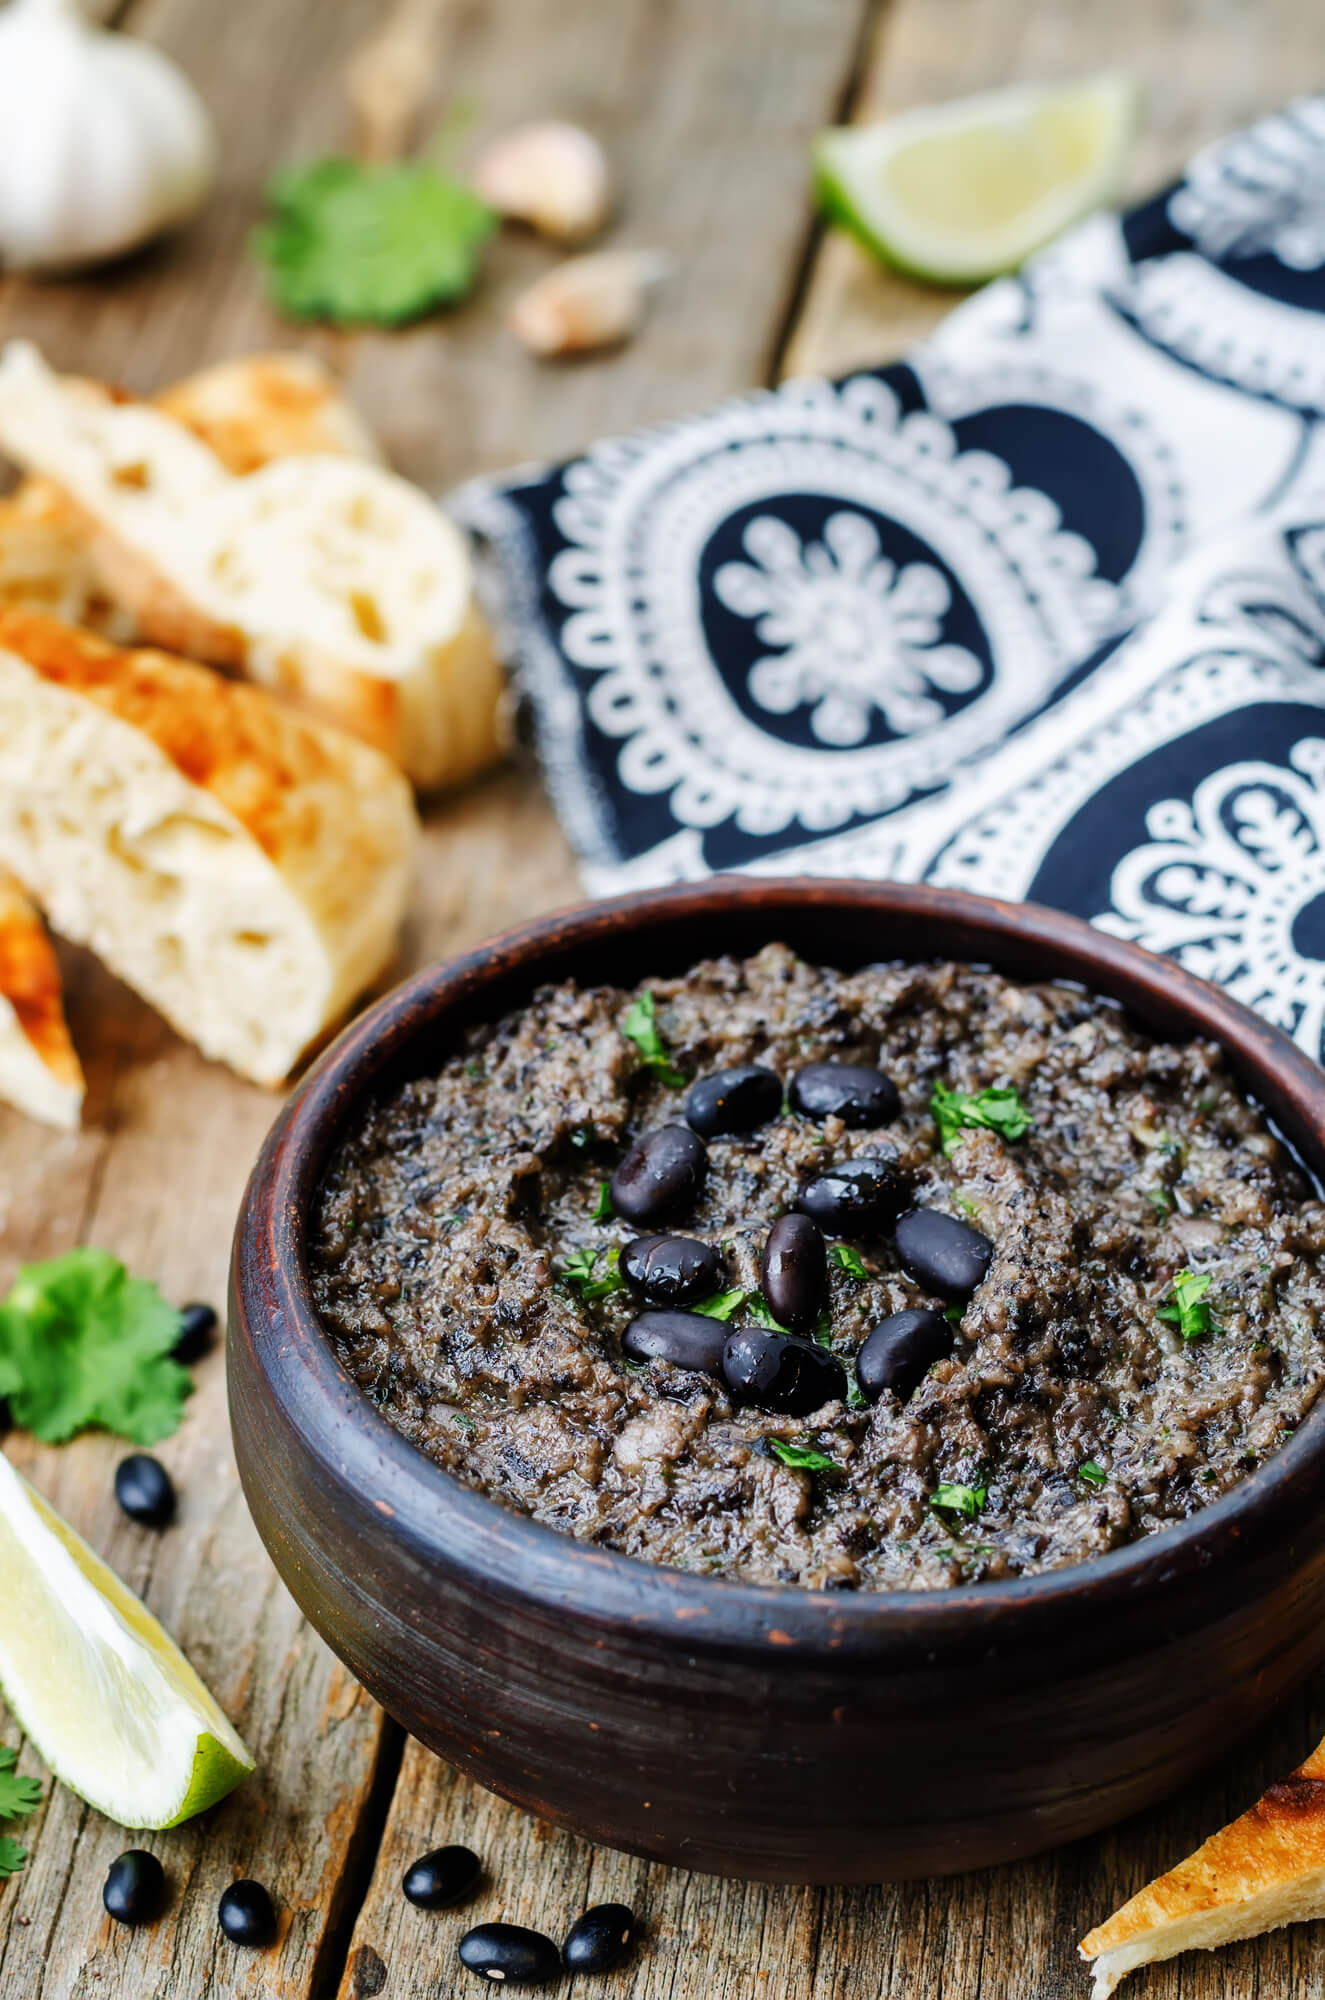 Black Bean Hummus is a wooden bowl with cilantro and garlic.